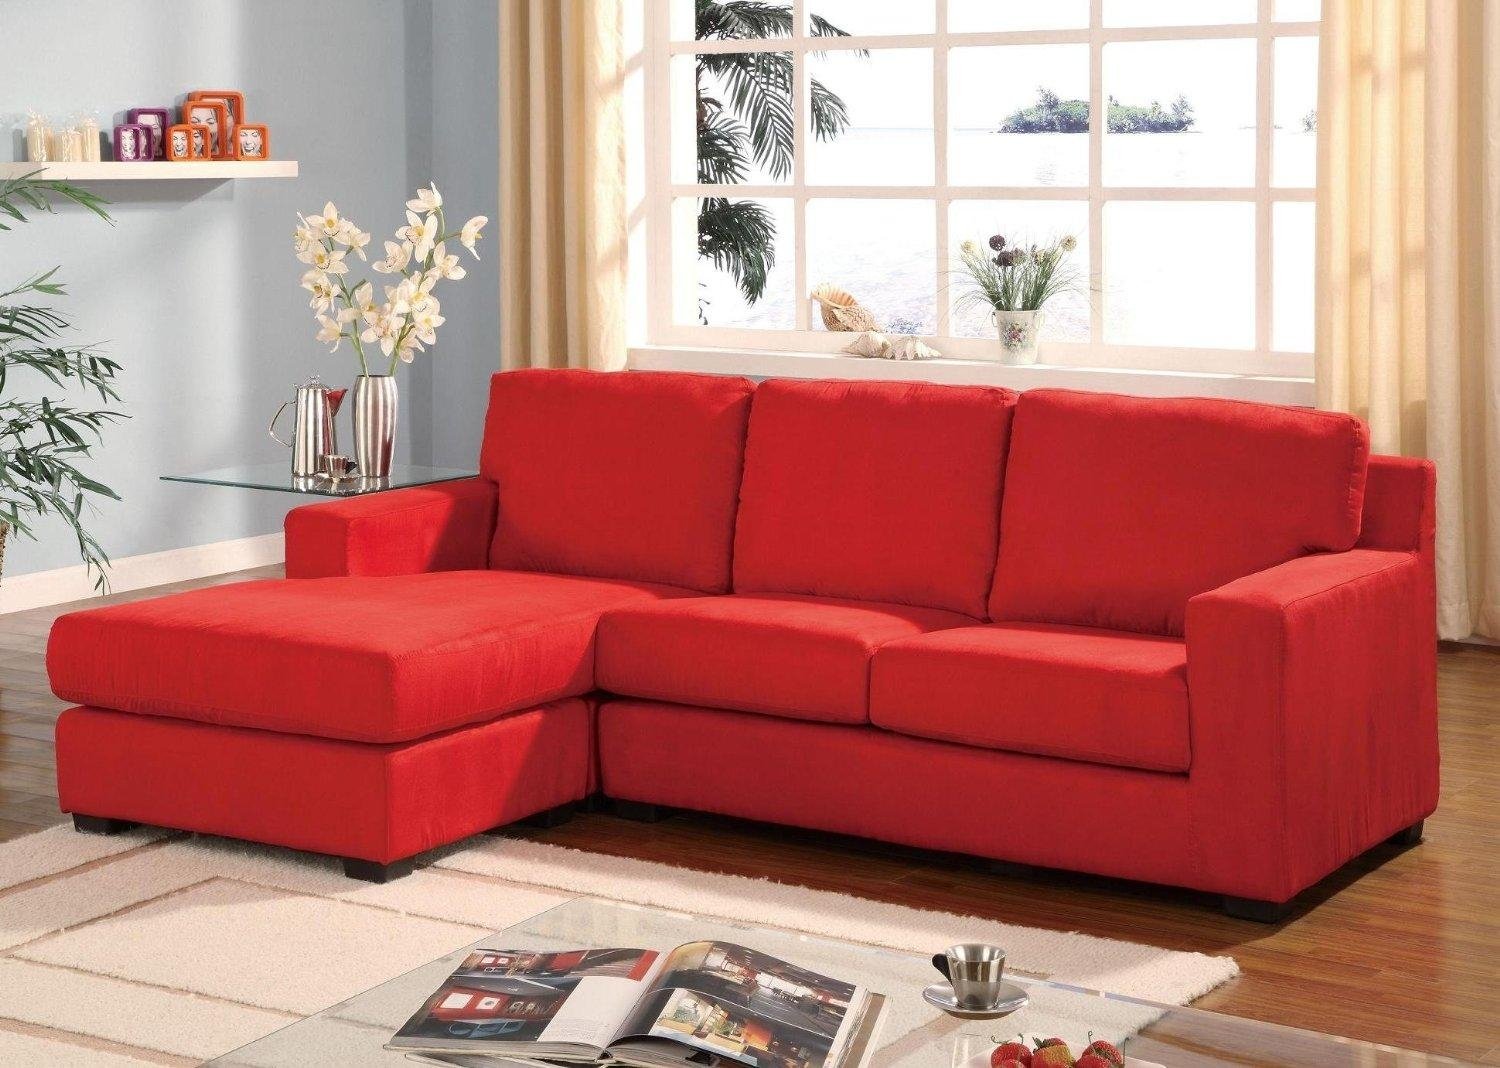 Red Sectional Sofa Decorating Ideas | Centerfieldbar Within Red Sectional Sleeper Sofas (View 8 of 22)